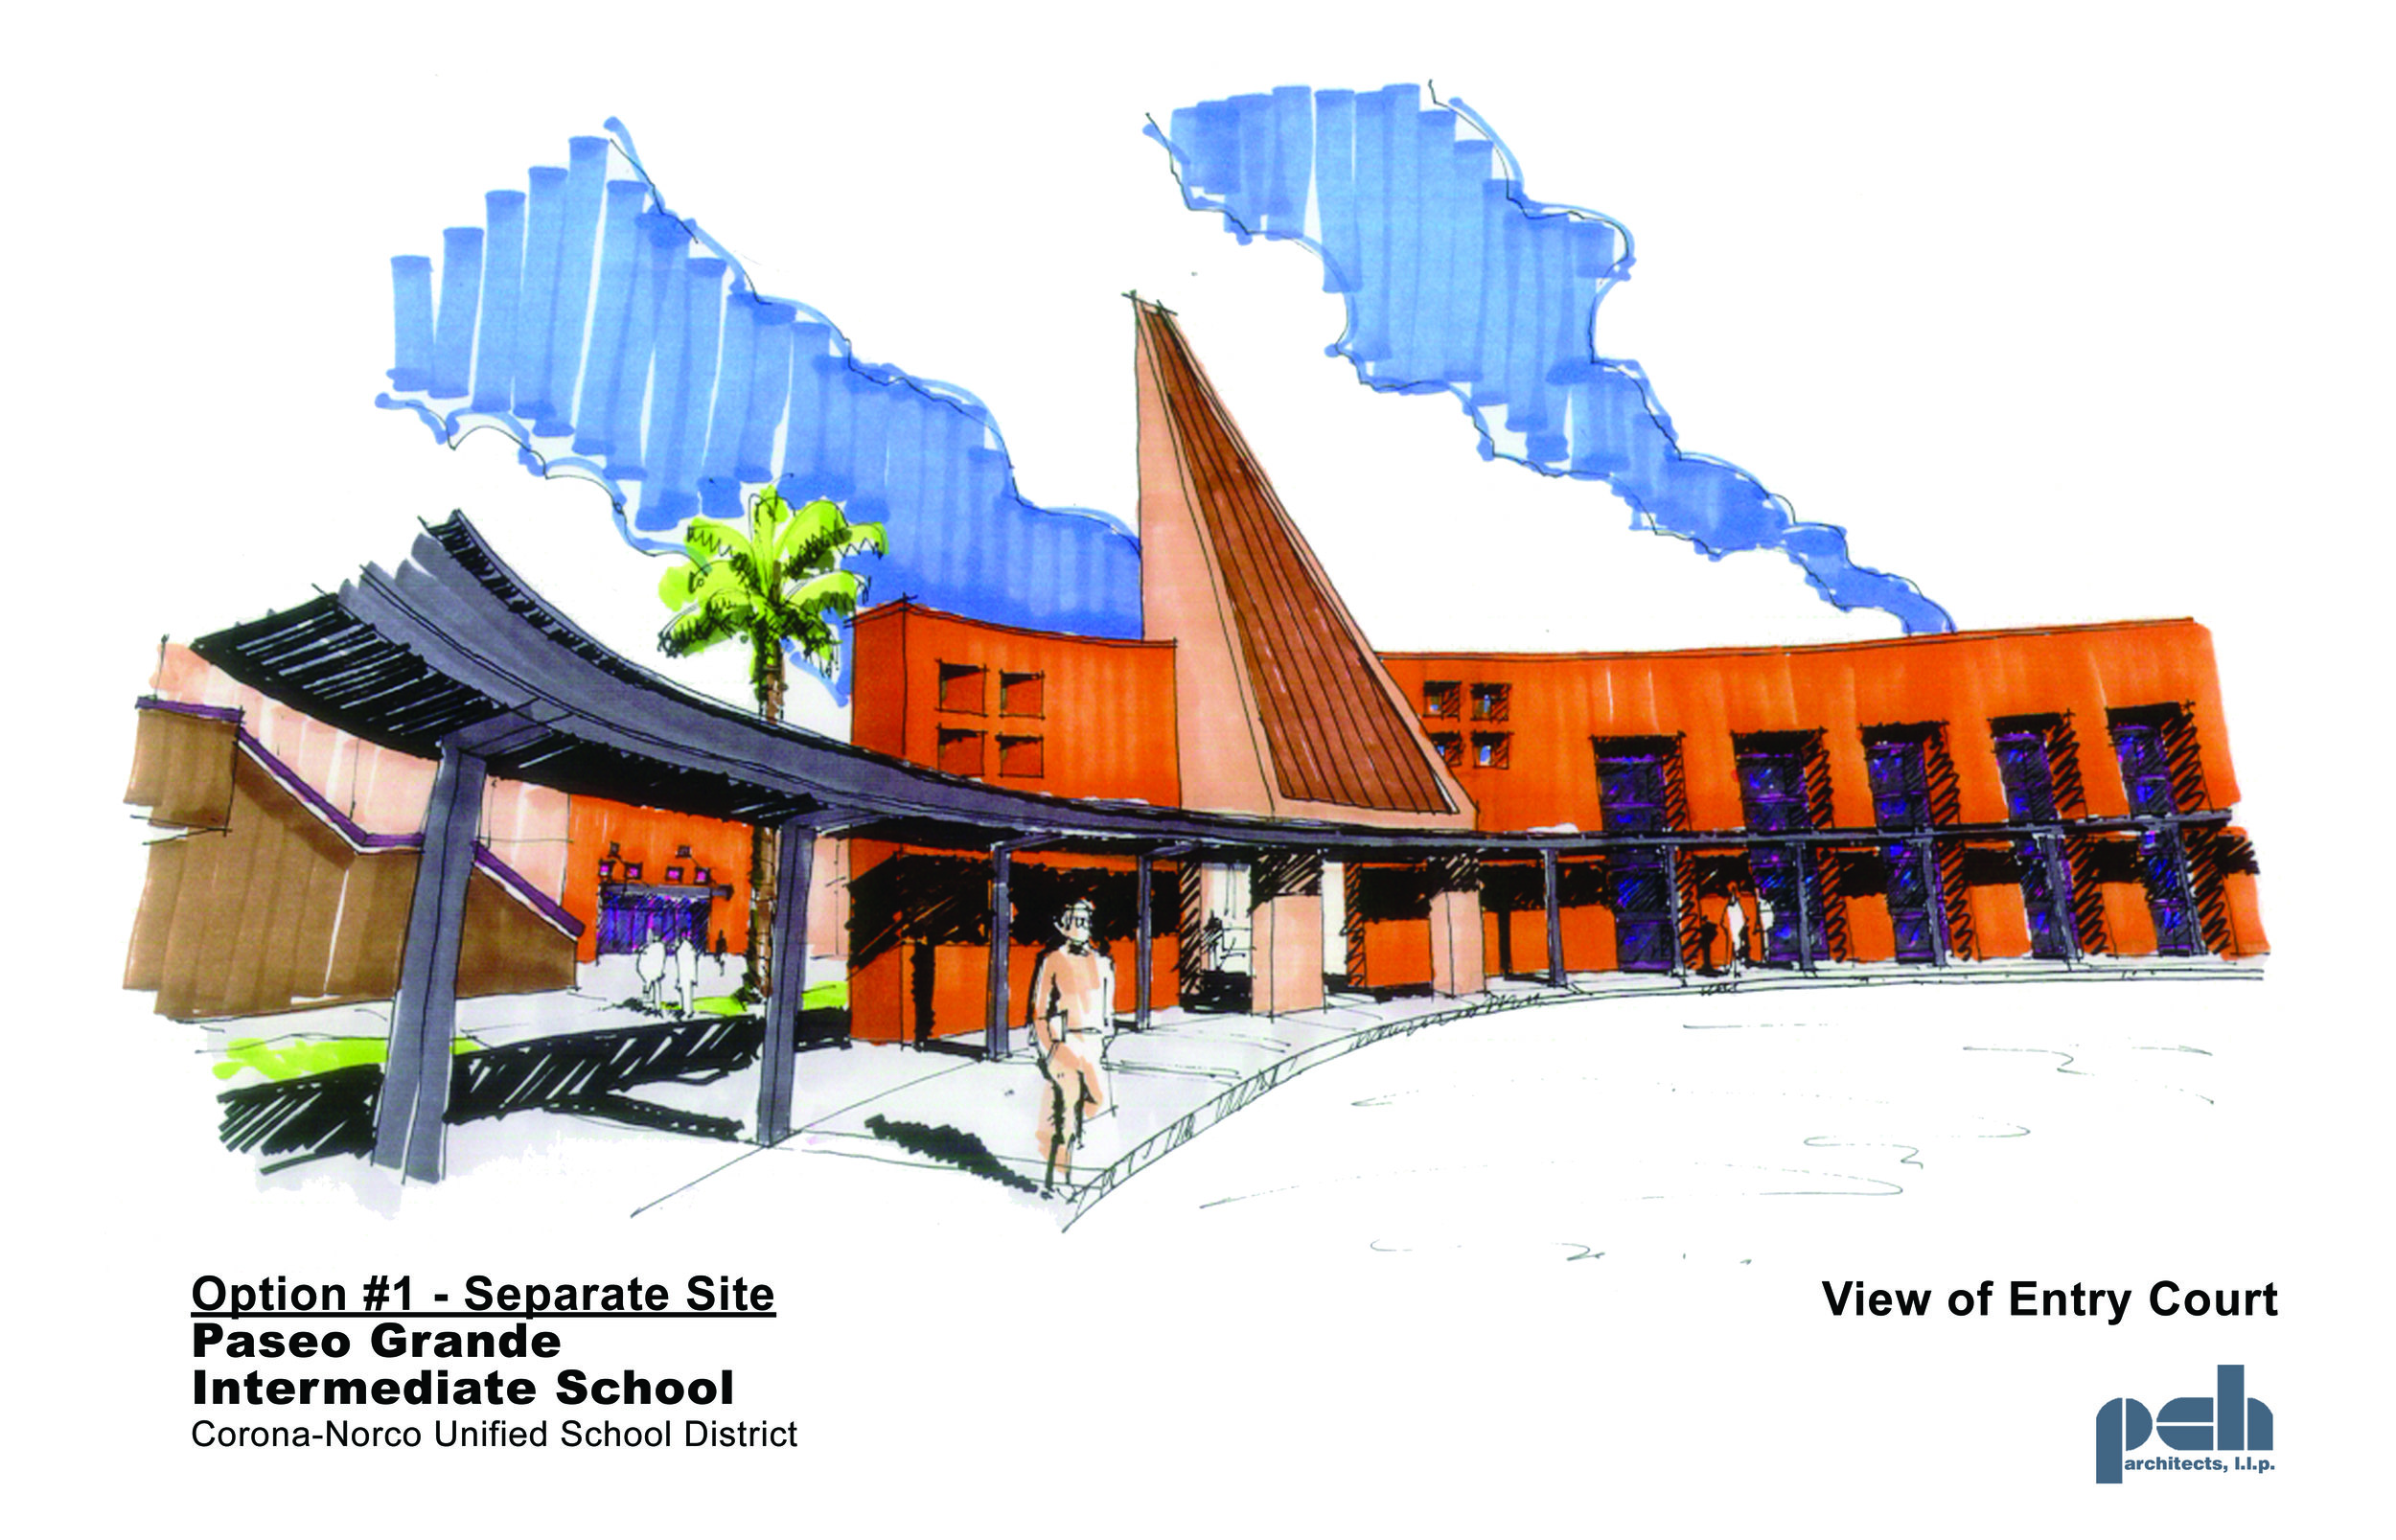 Rendering of an entry court for a local school, by PCH Architects